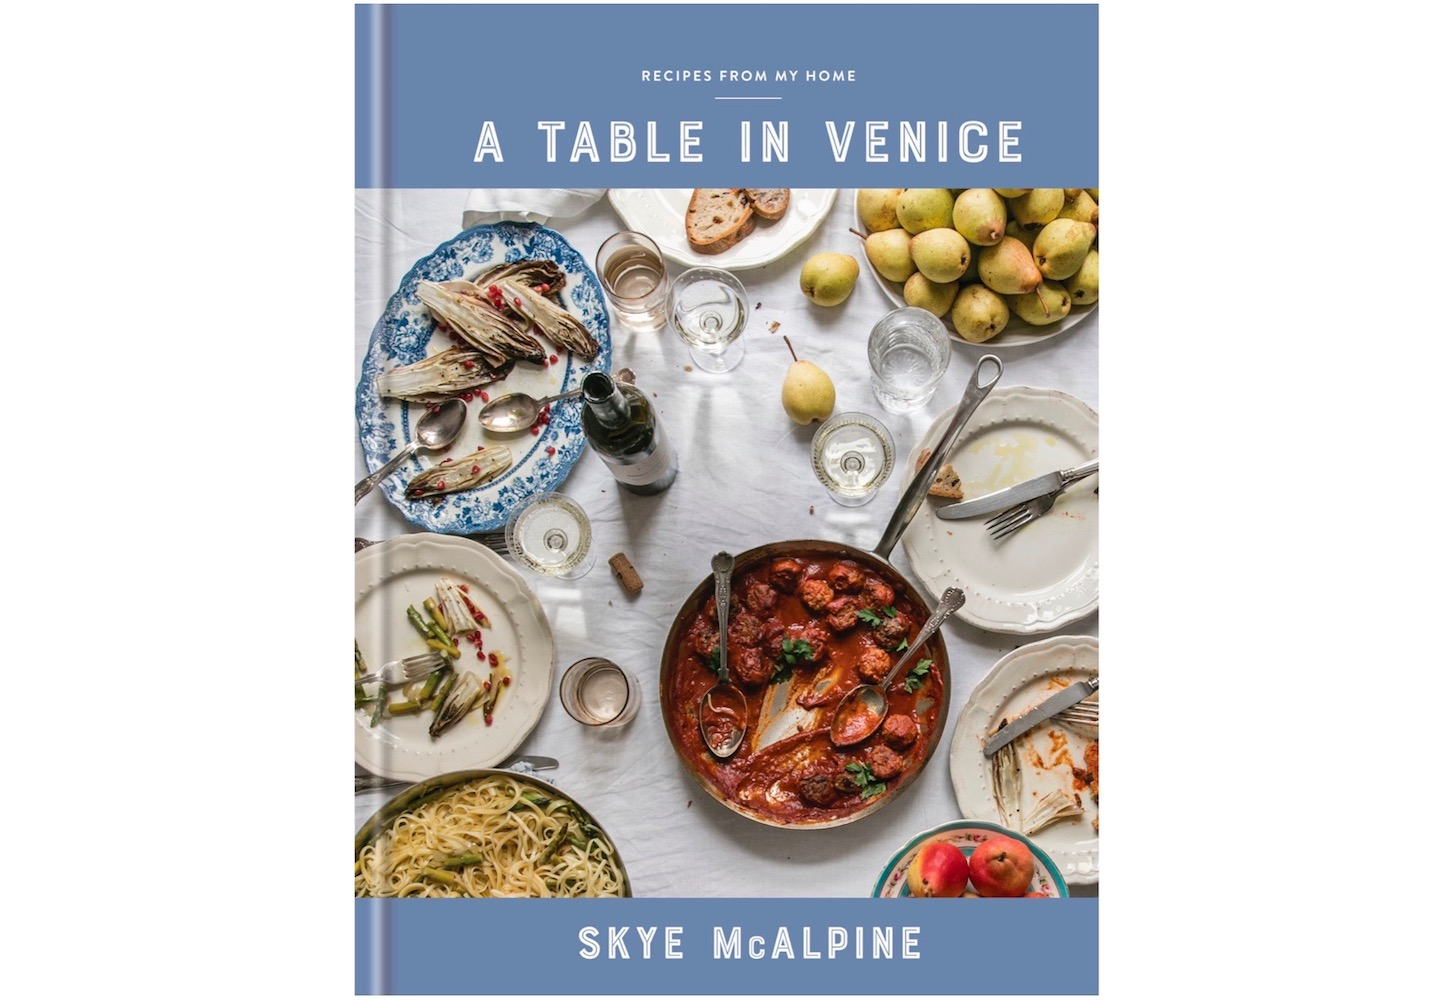 A Table in Venice by Skye McAlpine cookbook cover